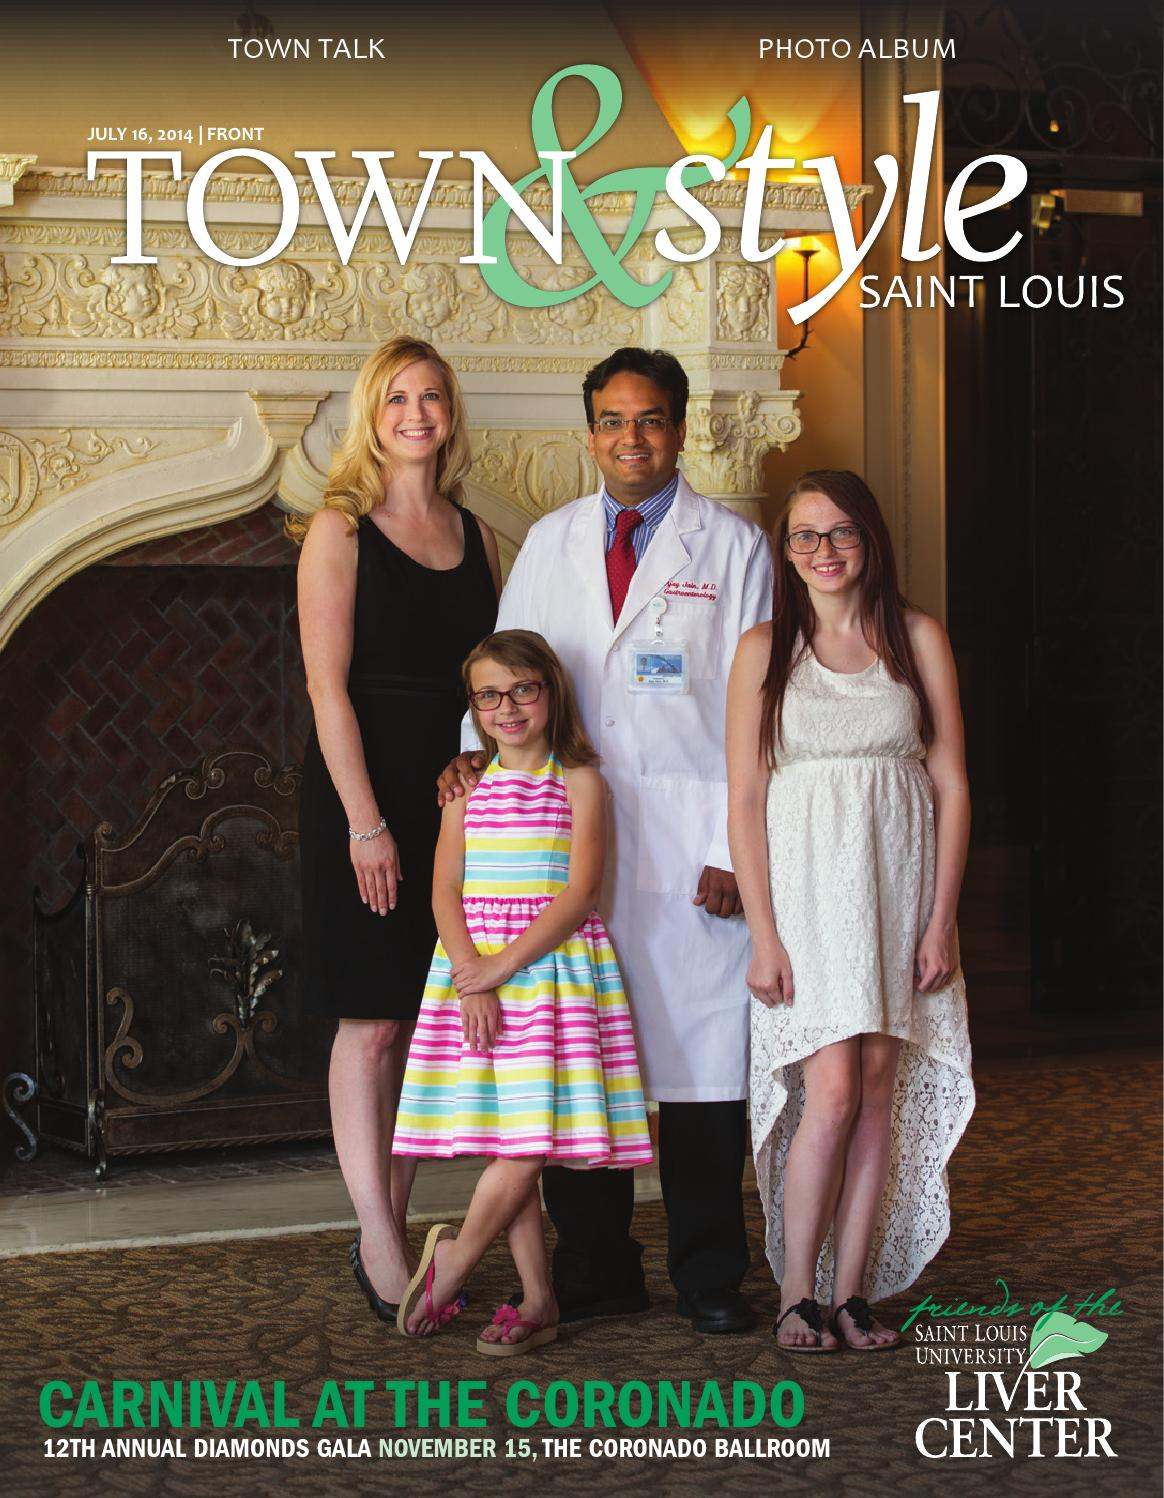 Town&Style St. Louis 07.16.14 by St. Louis Town & Style - issuu